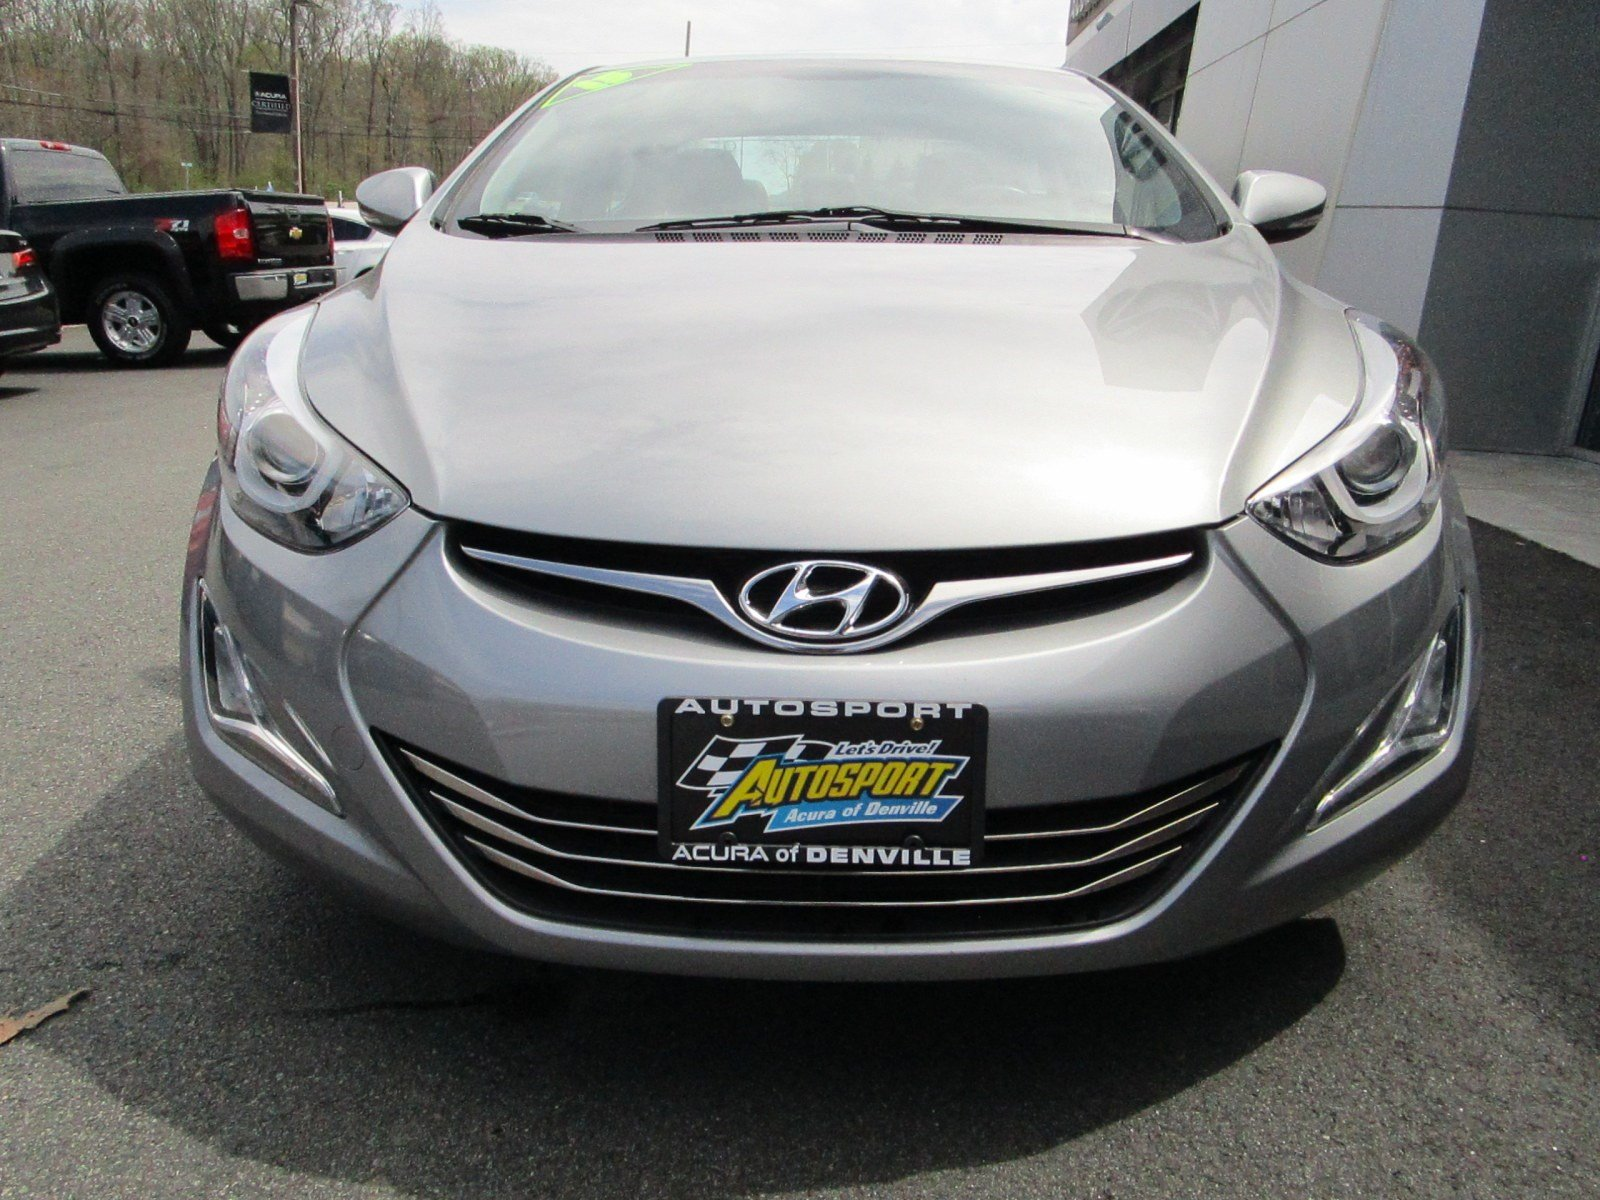 hp elantra likely boss sport manual get hyundai the optional to